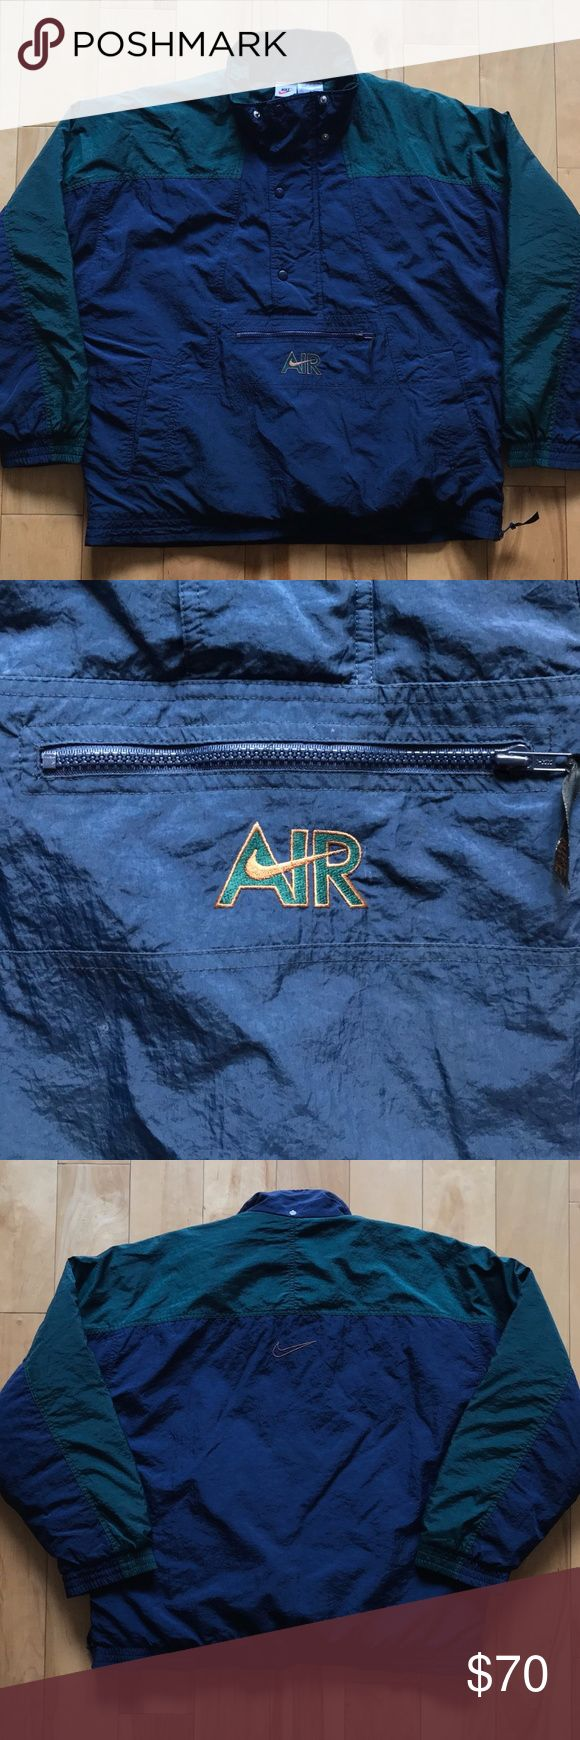 VINTAGE 90's NIKE AIR JACKET MEN'S SIZE L RARE Details: Great condition! No defects. Green & navy blue jacket. Half zip + button up. 3 front pockets 1 with zipper. Nike AIR logo embroidered on pocket. Nike swoosh embroidered on back of jacket.  MEASUREMENTS FURNISHED UPON REQUEST!  *Ships from US.  *Same or next day shipping.  *First-Class US shipping (delivery in 1 to 3 business days).  *First-Class International shipping (delivery in 7 to 21 business days).  *Tracking # supplied after…